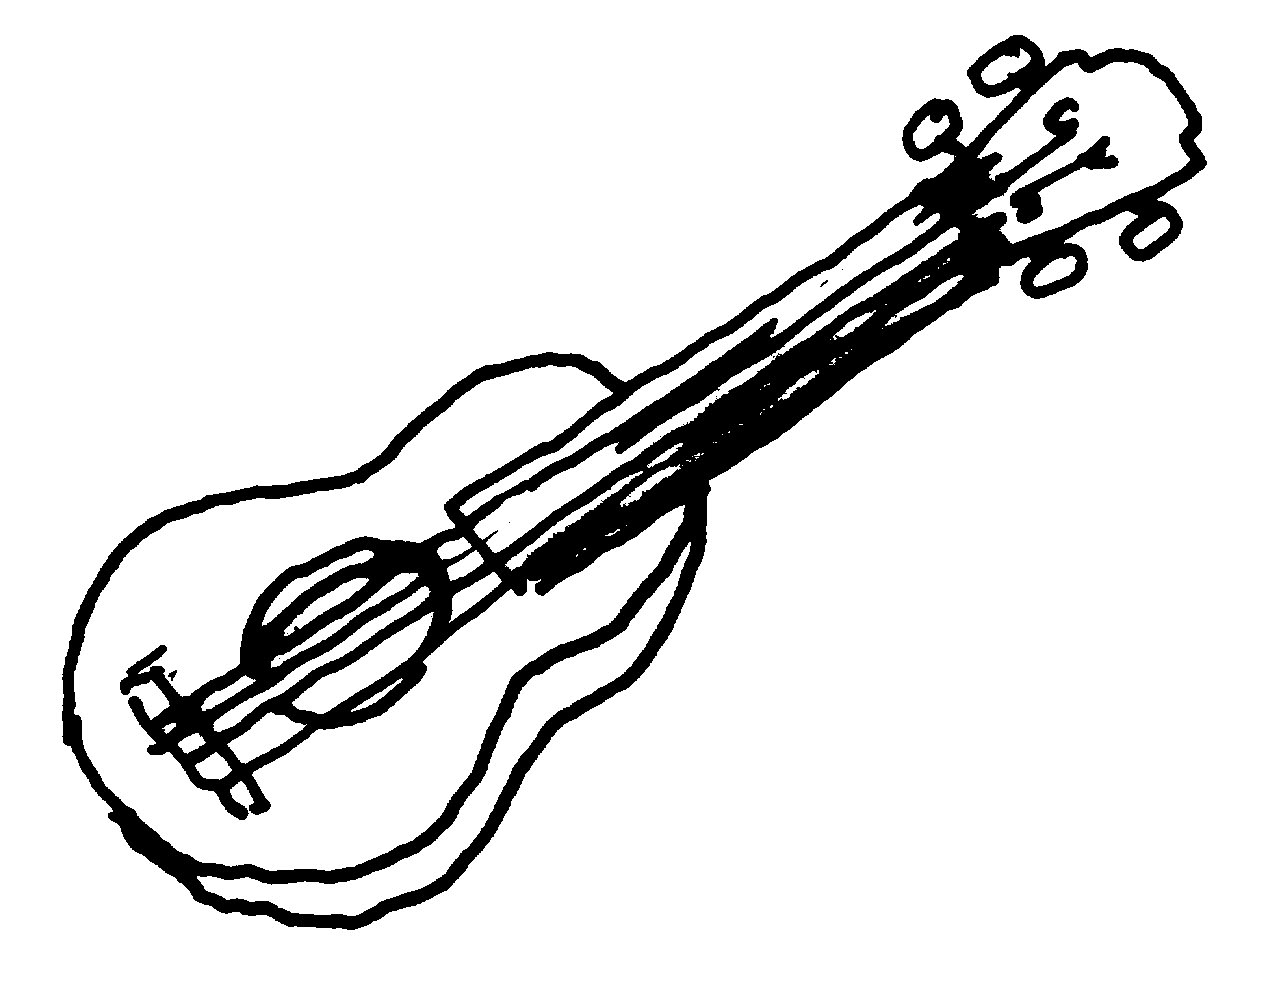 Guitar  black and white guitar clip art images